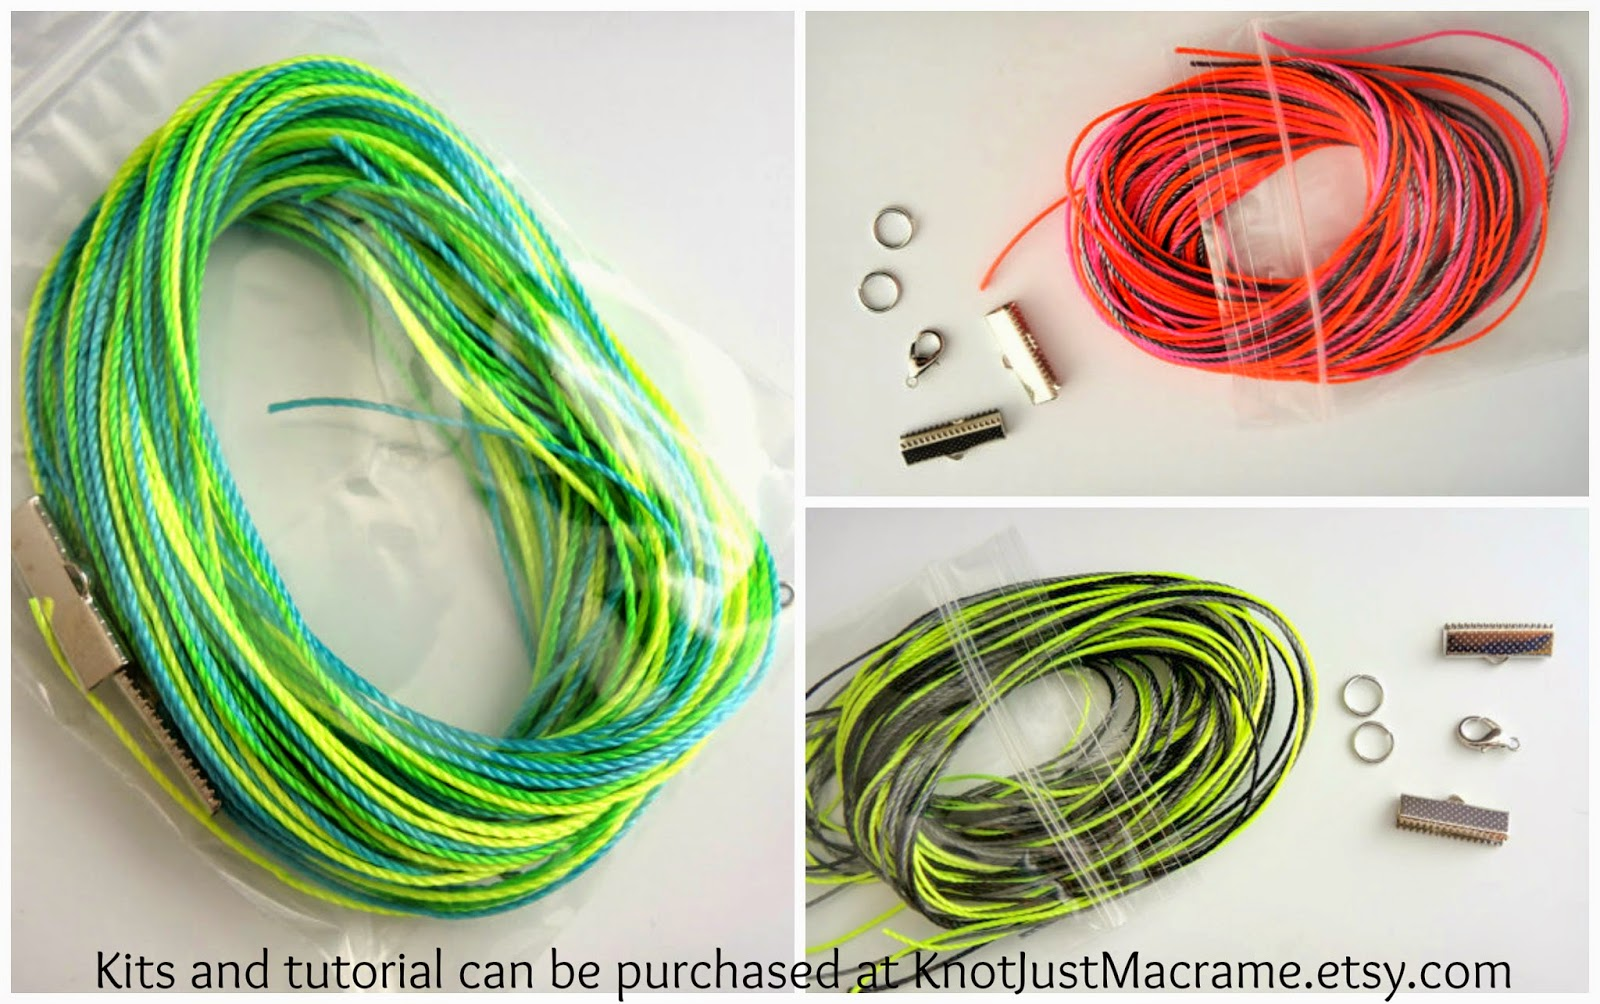 Neon materials kits available for Curves Micro Macrame Bracelet tutorial.